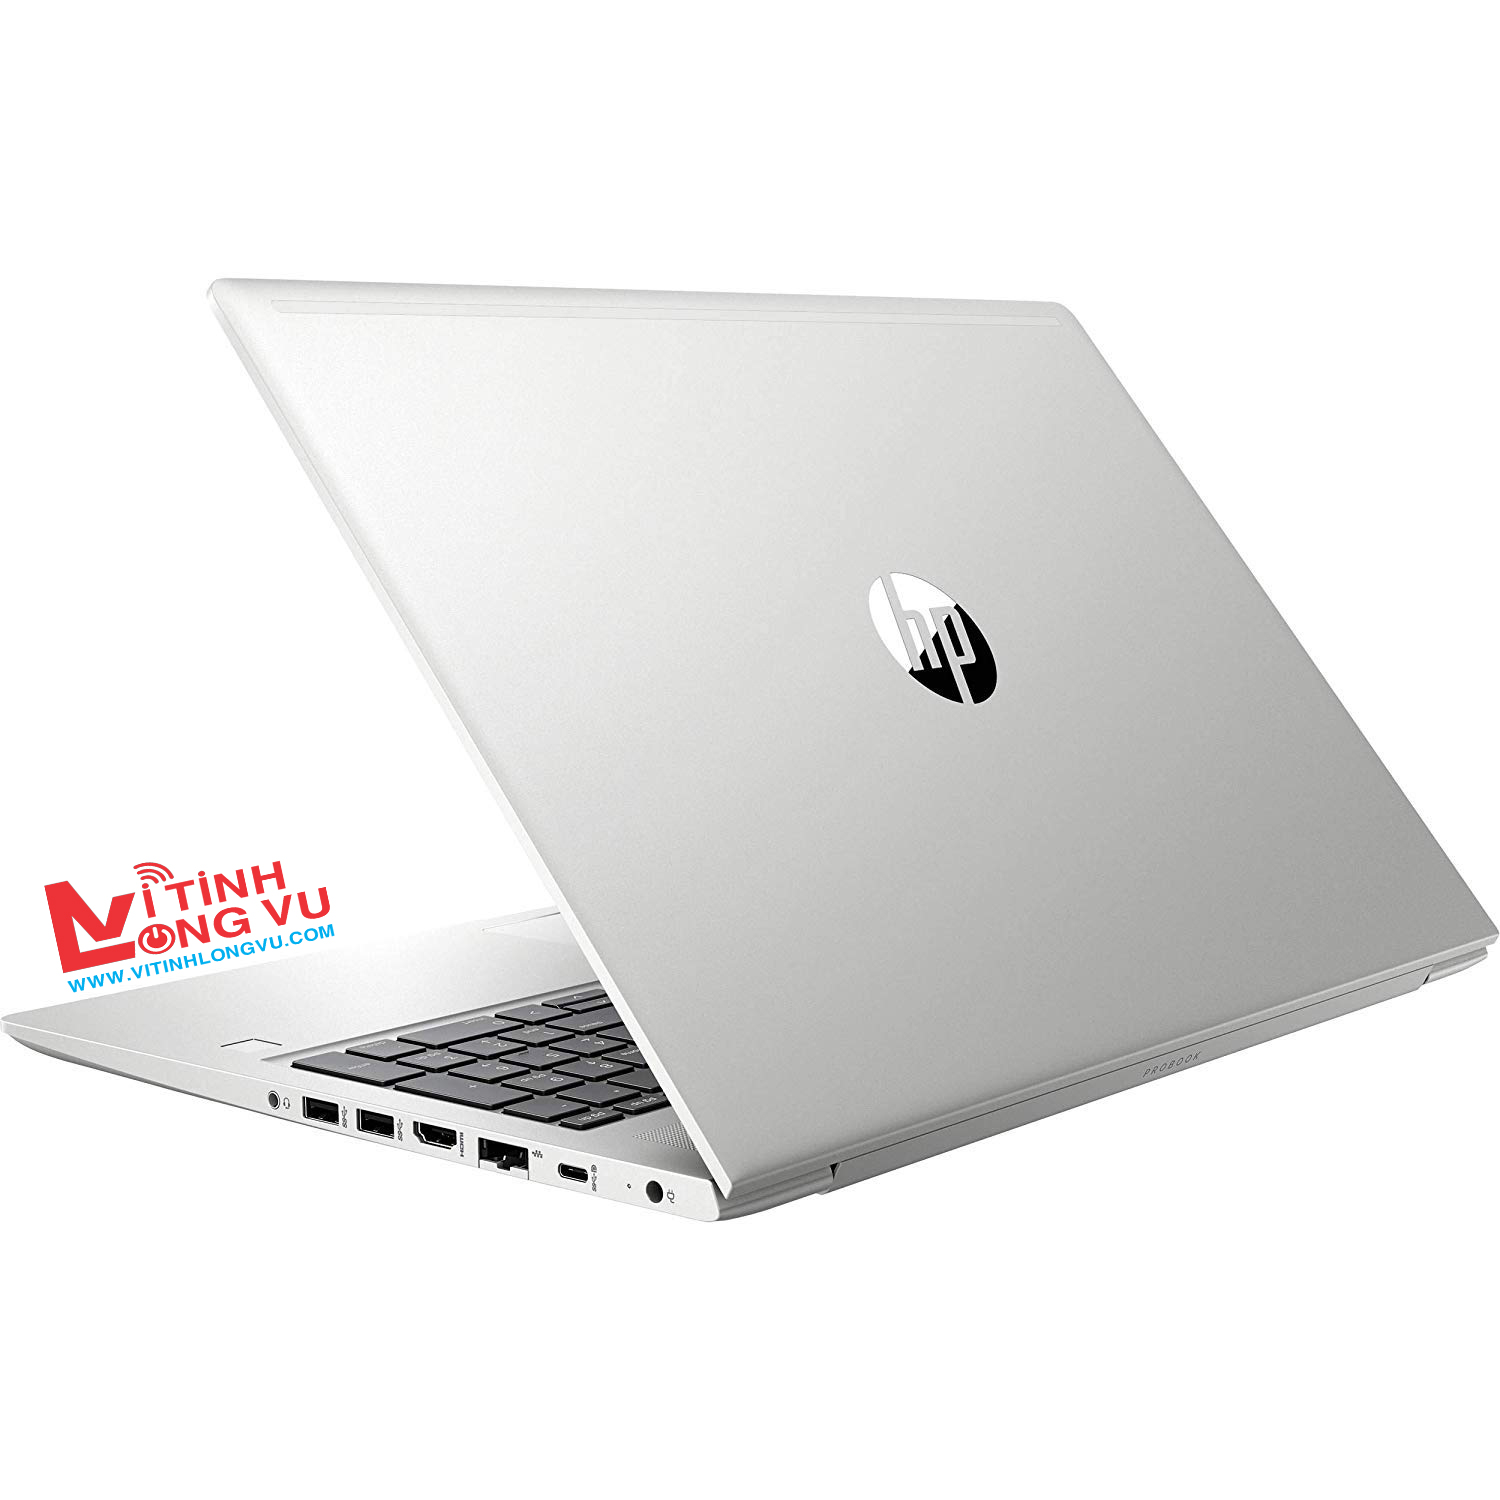 HP ELITEBOOK 840 G5 I7 7200 I7 8650U 16GB 512GB 32GB 1TB SSD 14FHD